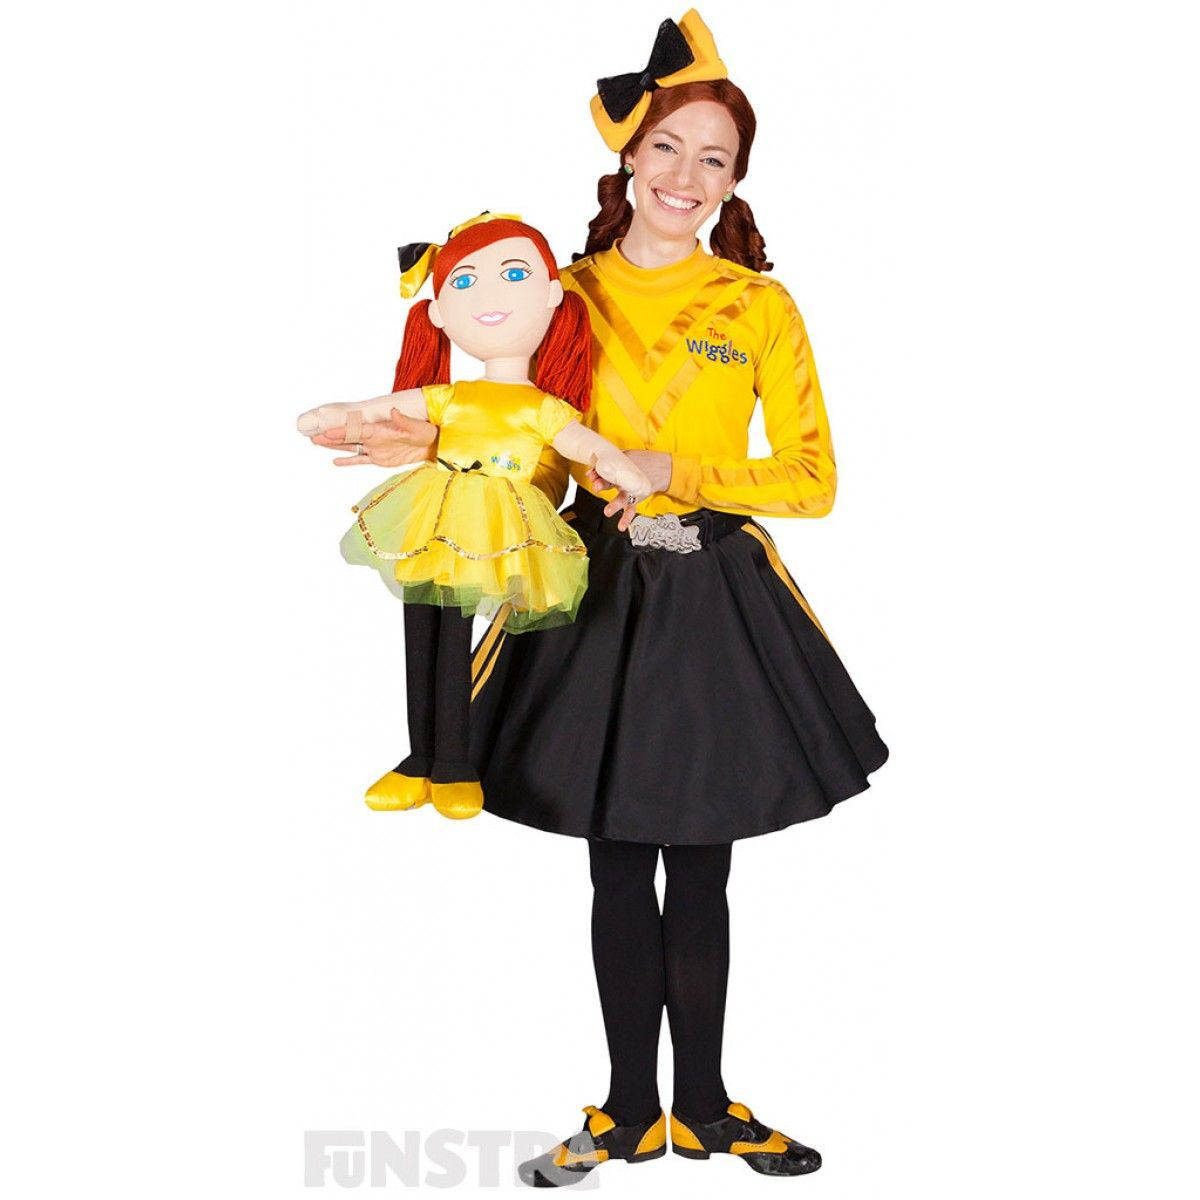 bf0b108346cde Yellow Wiggle, Emma Watkins from The Wiggles, with the Dance With Me Emma  Ballerina Doll, available from Funstra